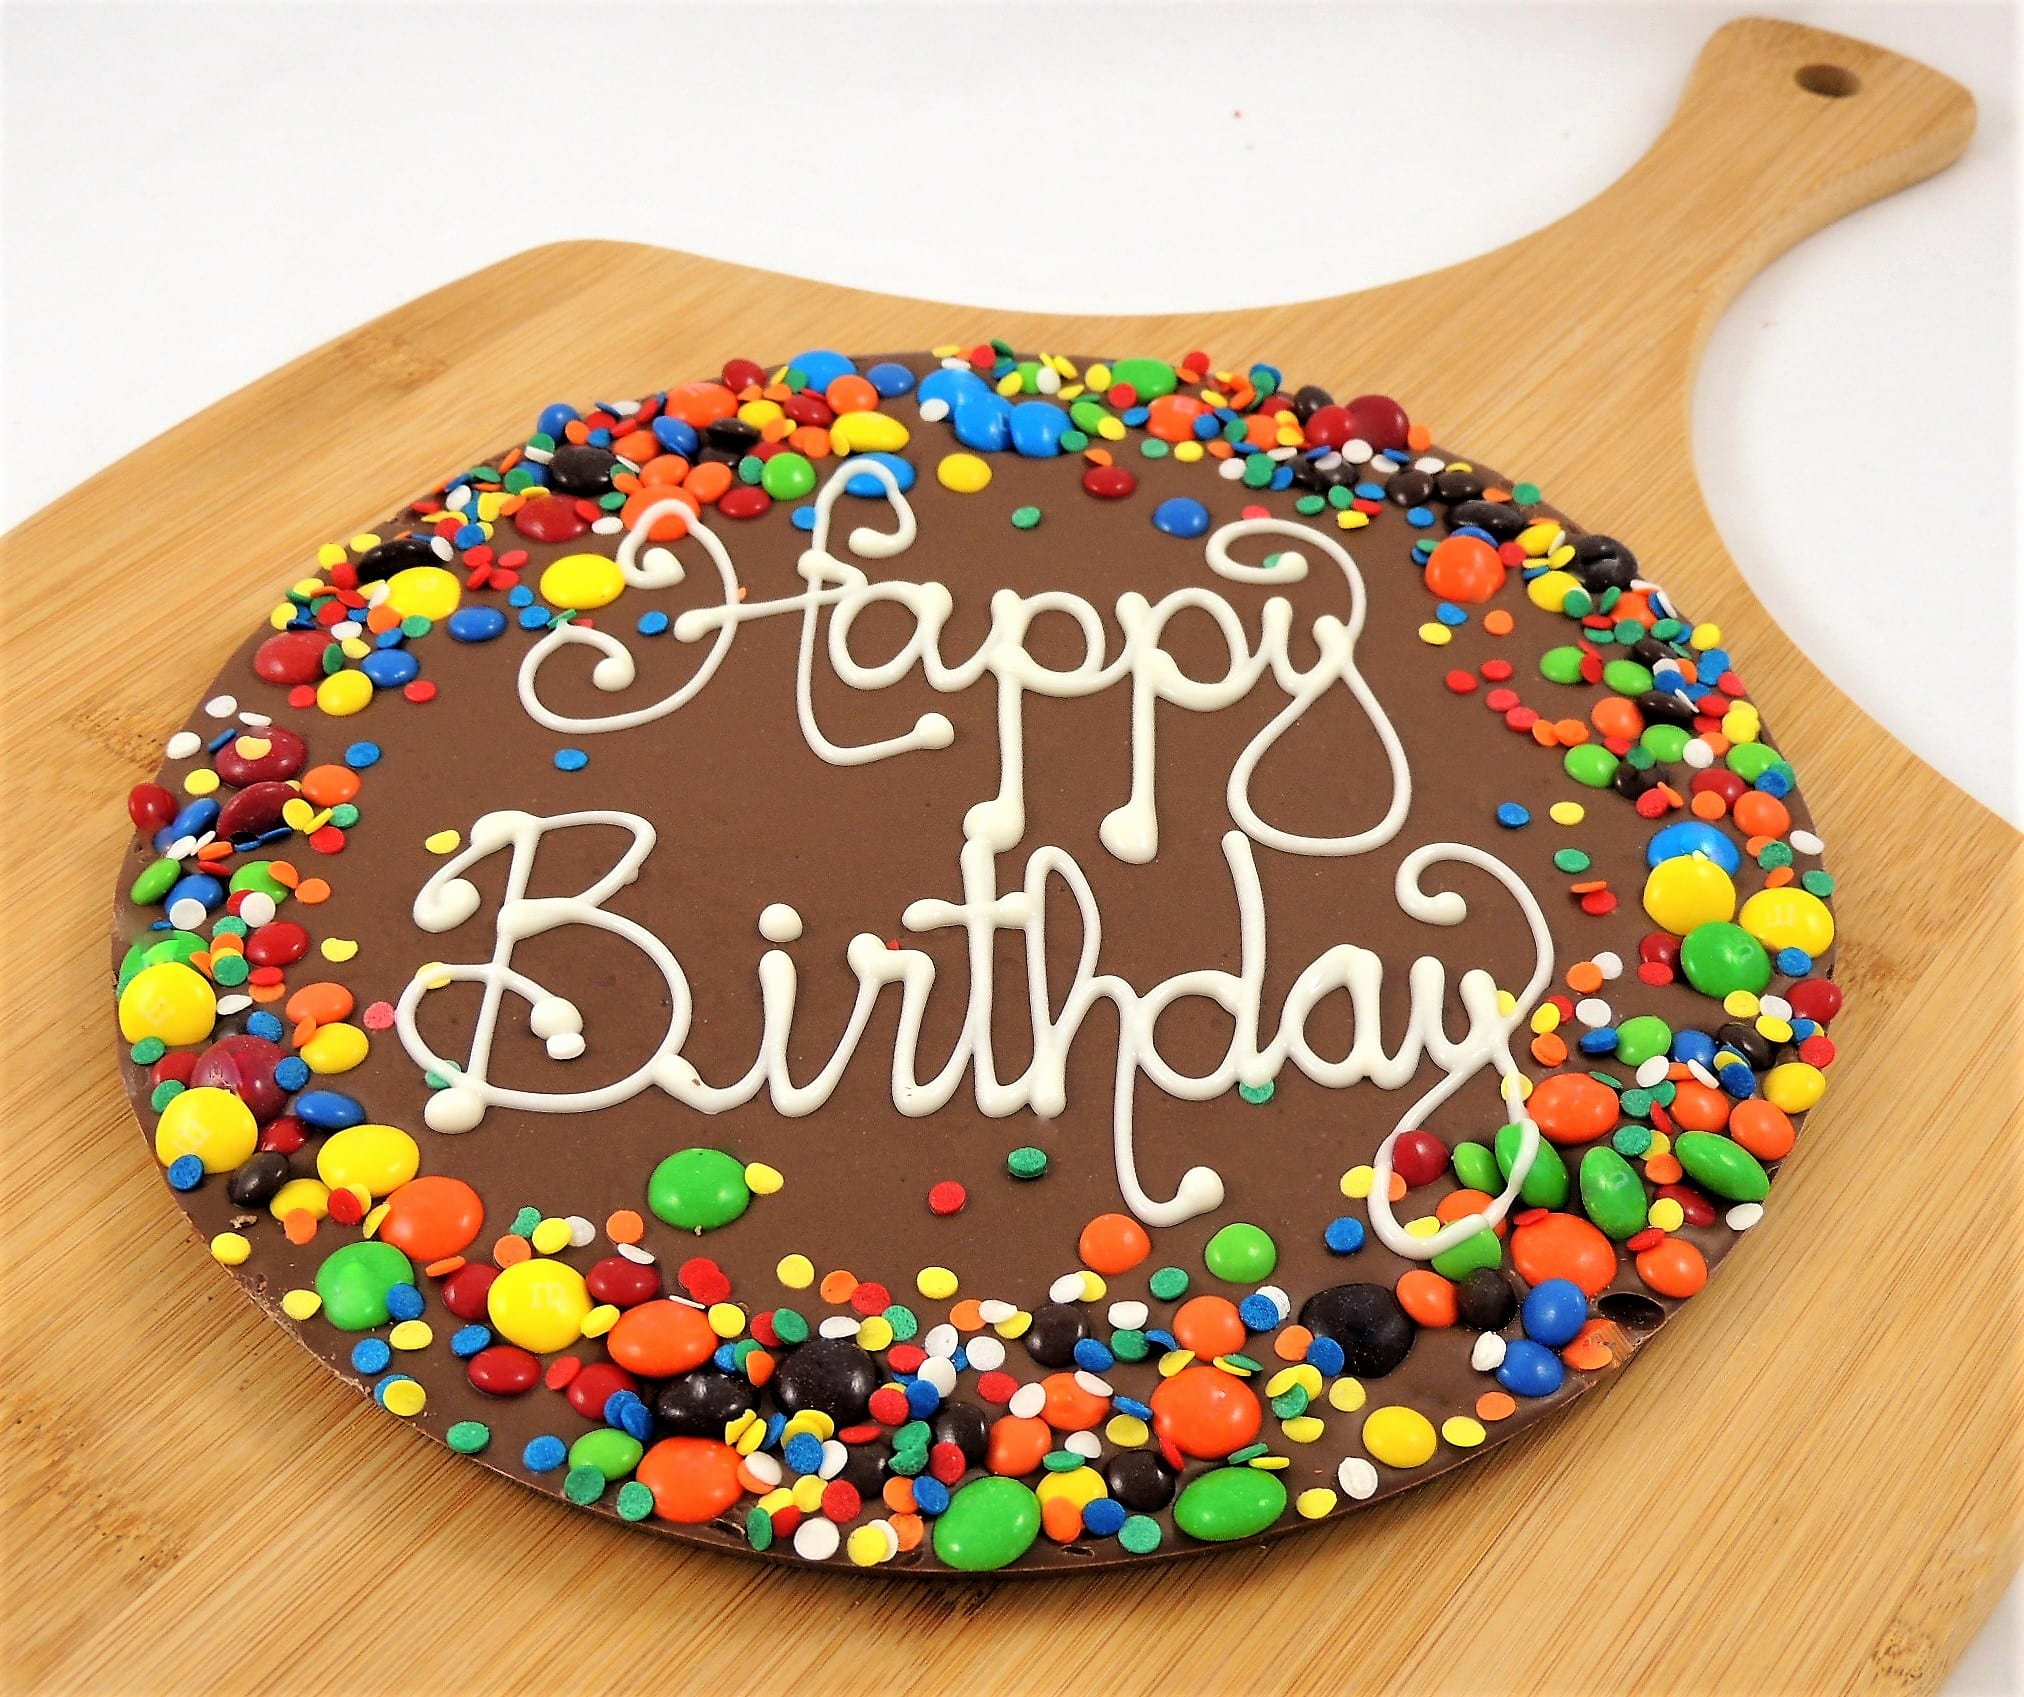 Happy Birthday Candy Images Beautiful Happy Birthday Chocolate Candy Chocolate Pizza